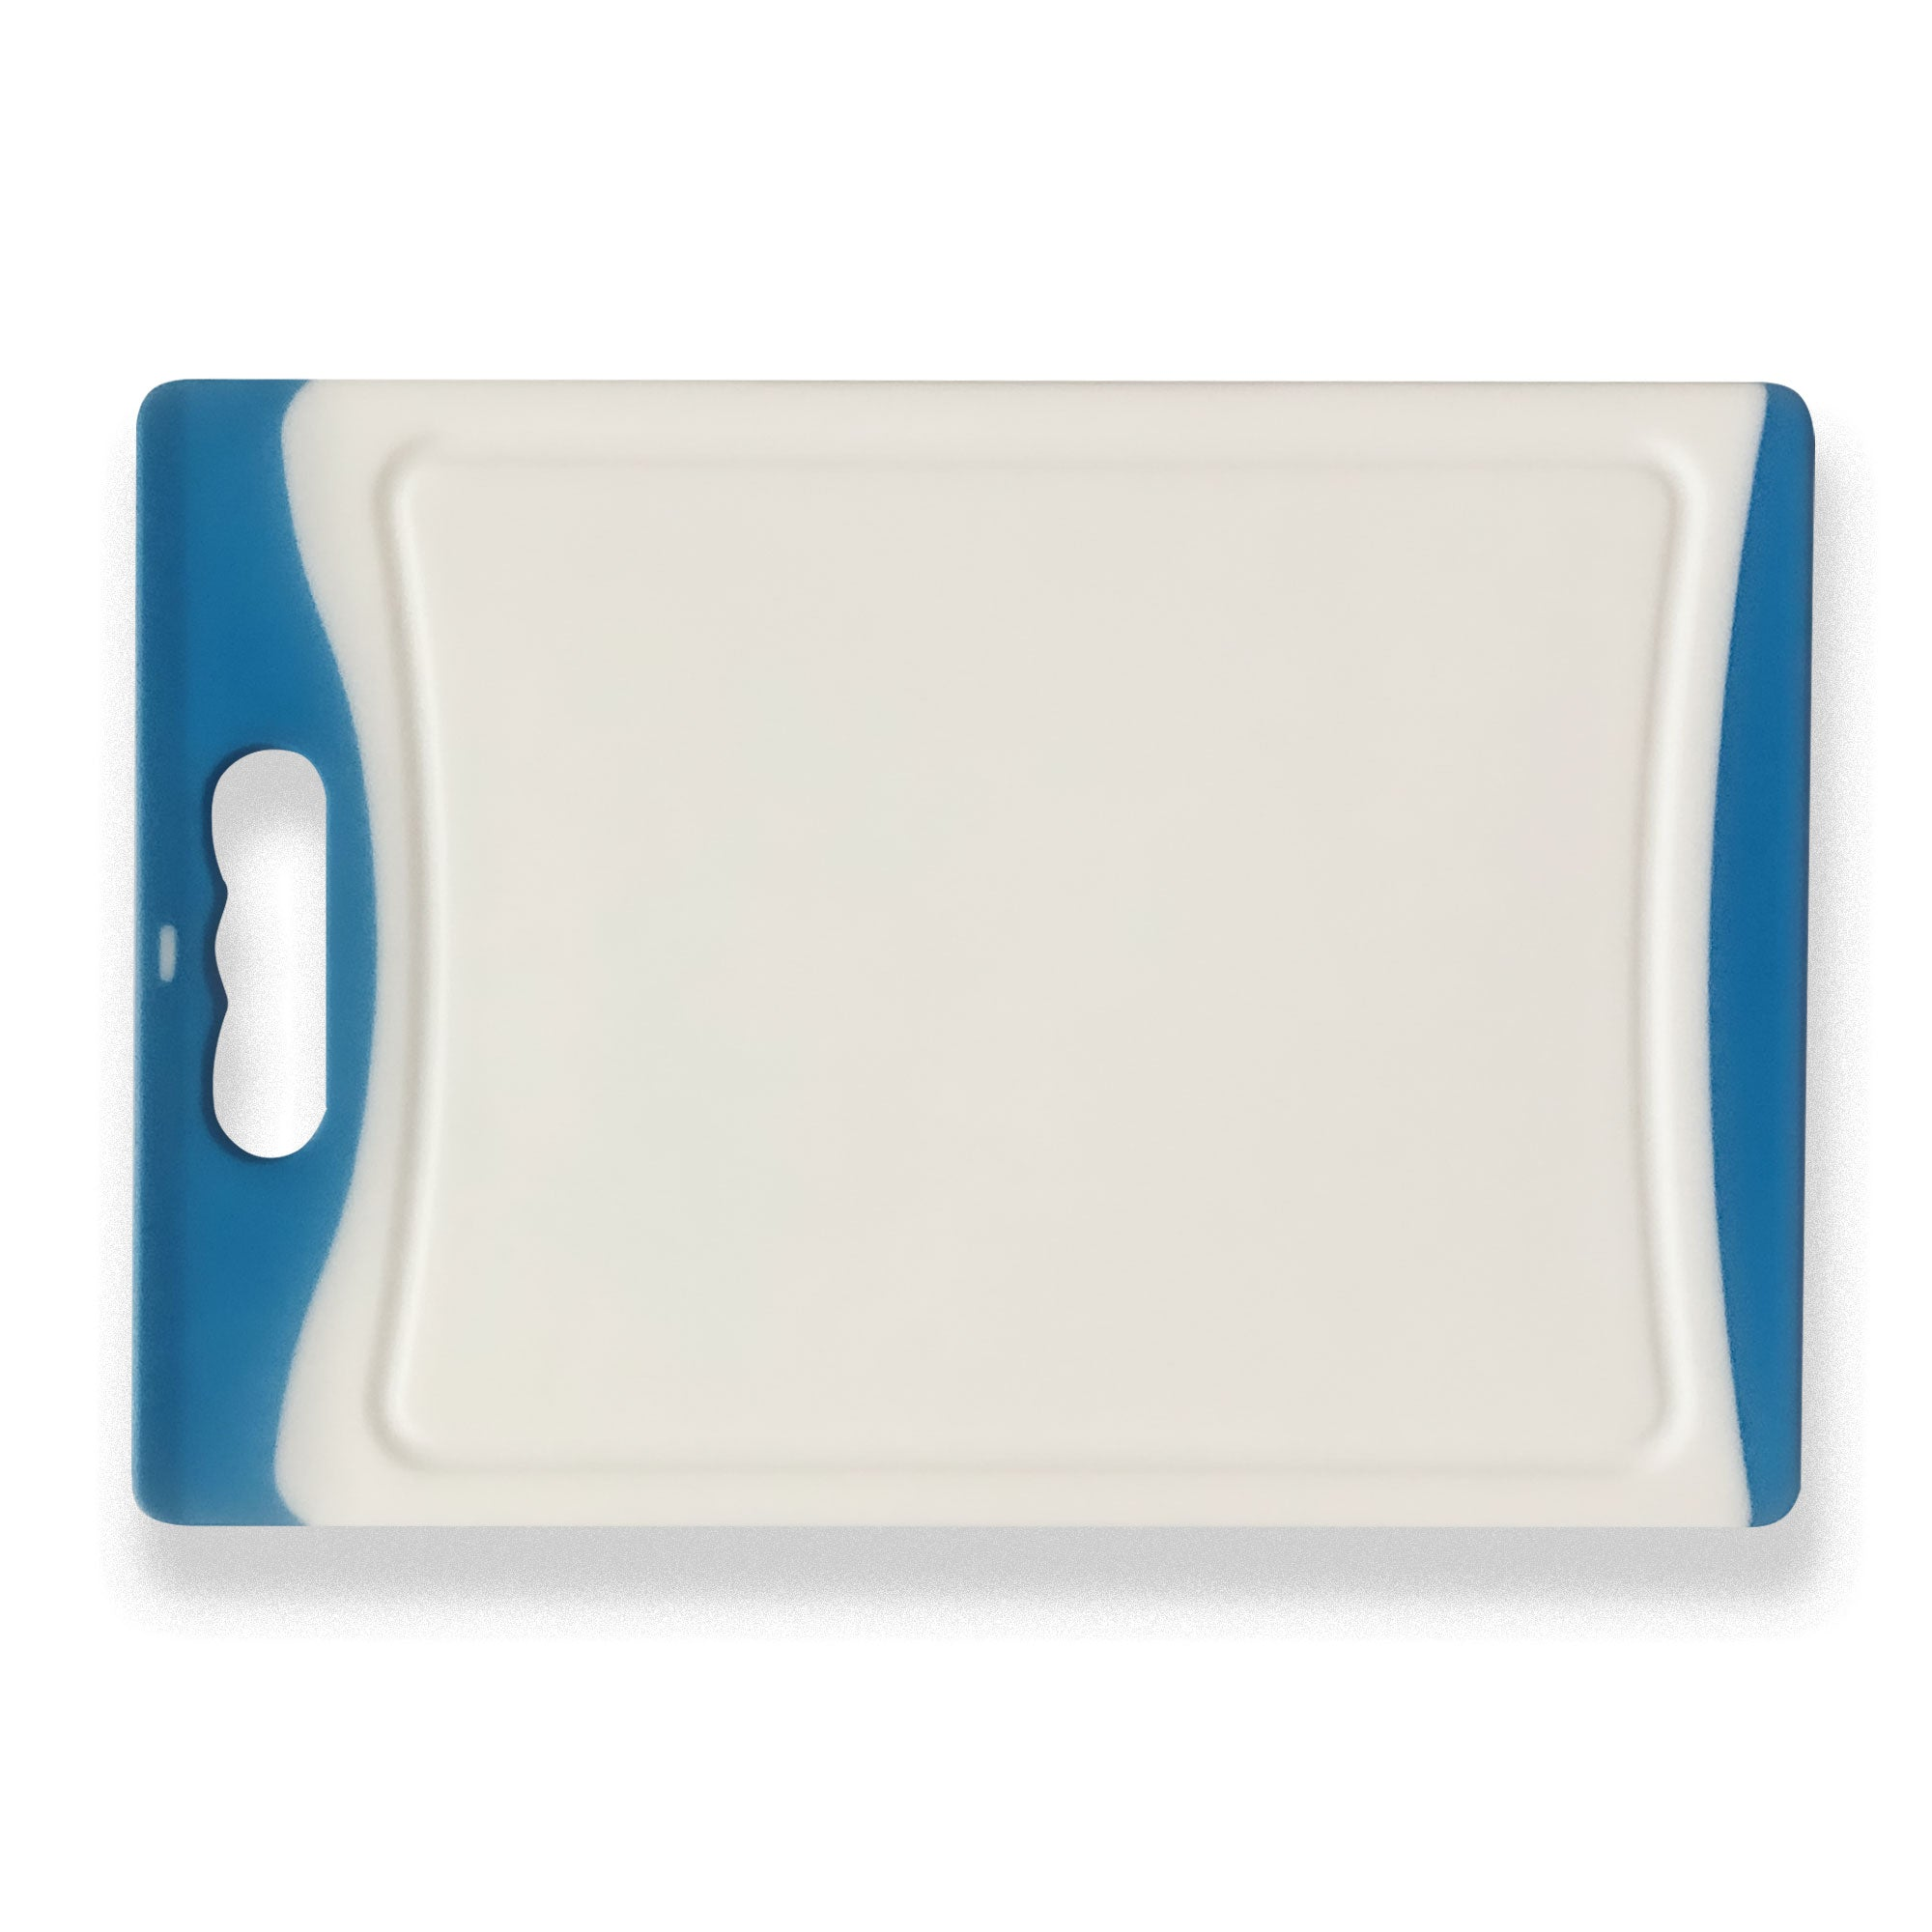 Small Plastic Chopping Board - Blue 29cm